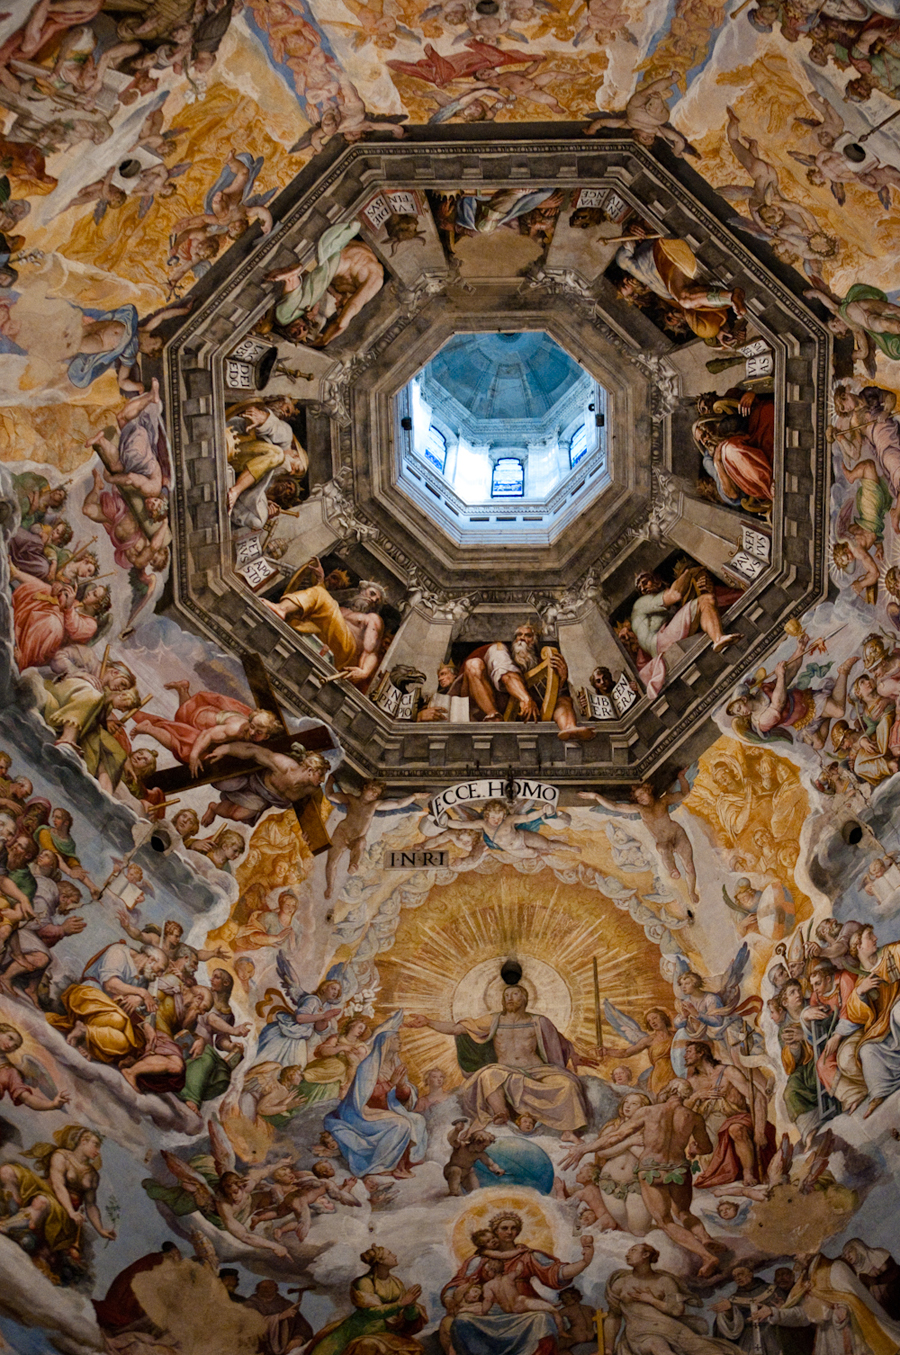 This fresco on the dome's interior depicts the Last Judgment, completed in 1579.